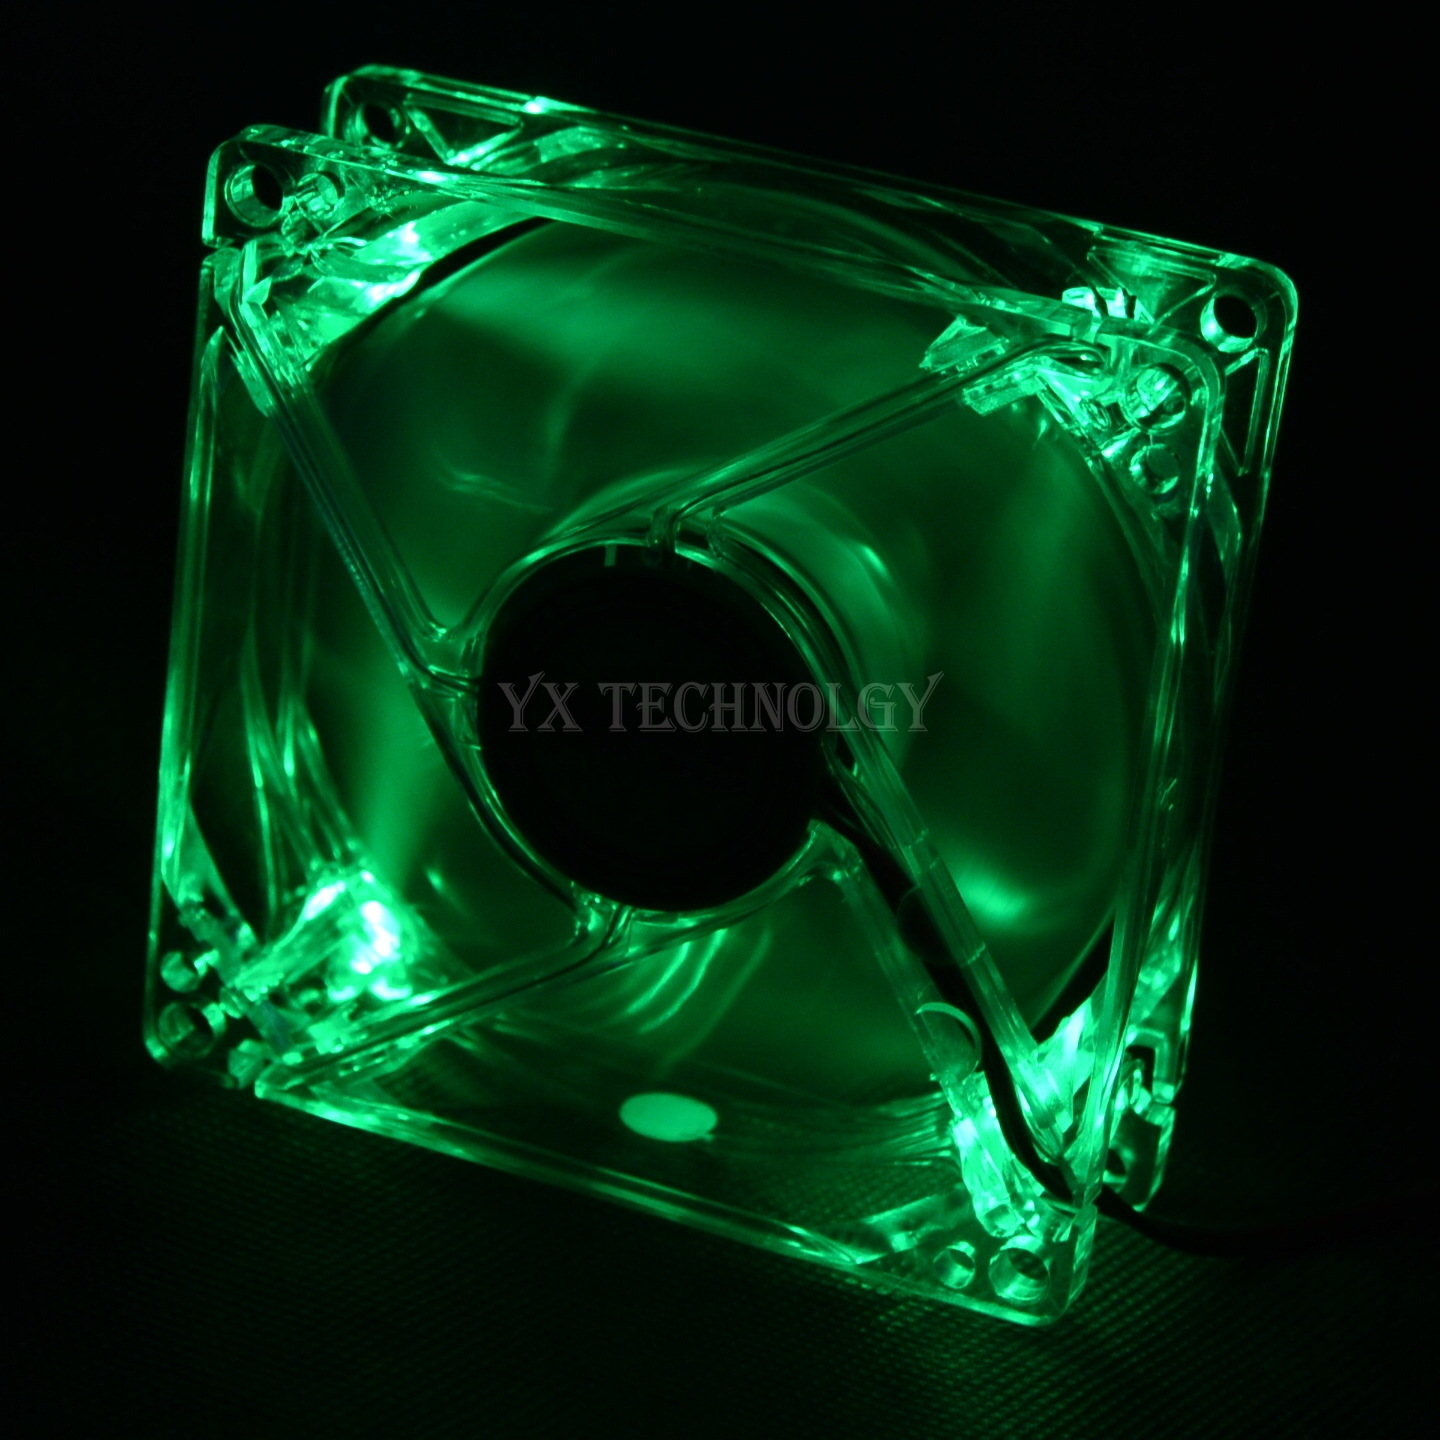 SZYTF 8025 GDT Green Red Bule Four color LED PC Computer Case Brushless Cooling Fan 80mm 8080x25mm 8025S DC 12V 4Pin Cooler factory price binmer hot selling 1pcs 120mm 120x25mm 12v 4pin dc brushless pc computer case cooling fan 1800prm drop shipping